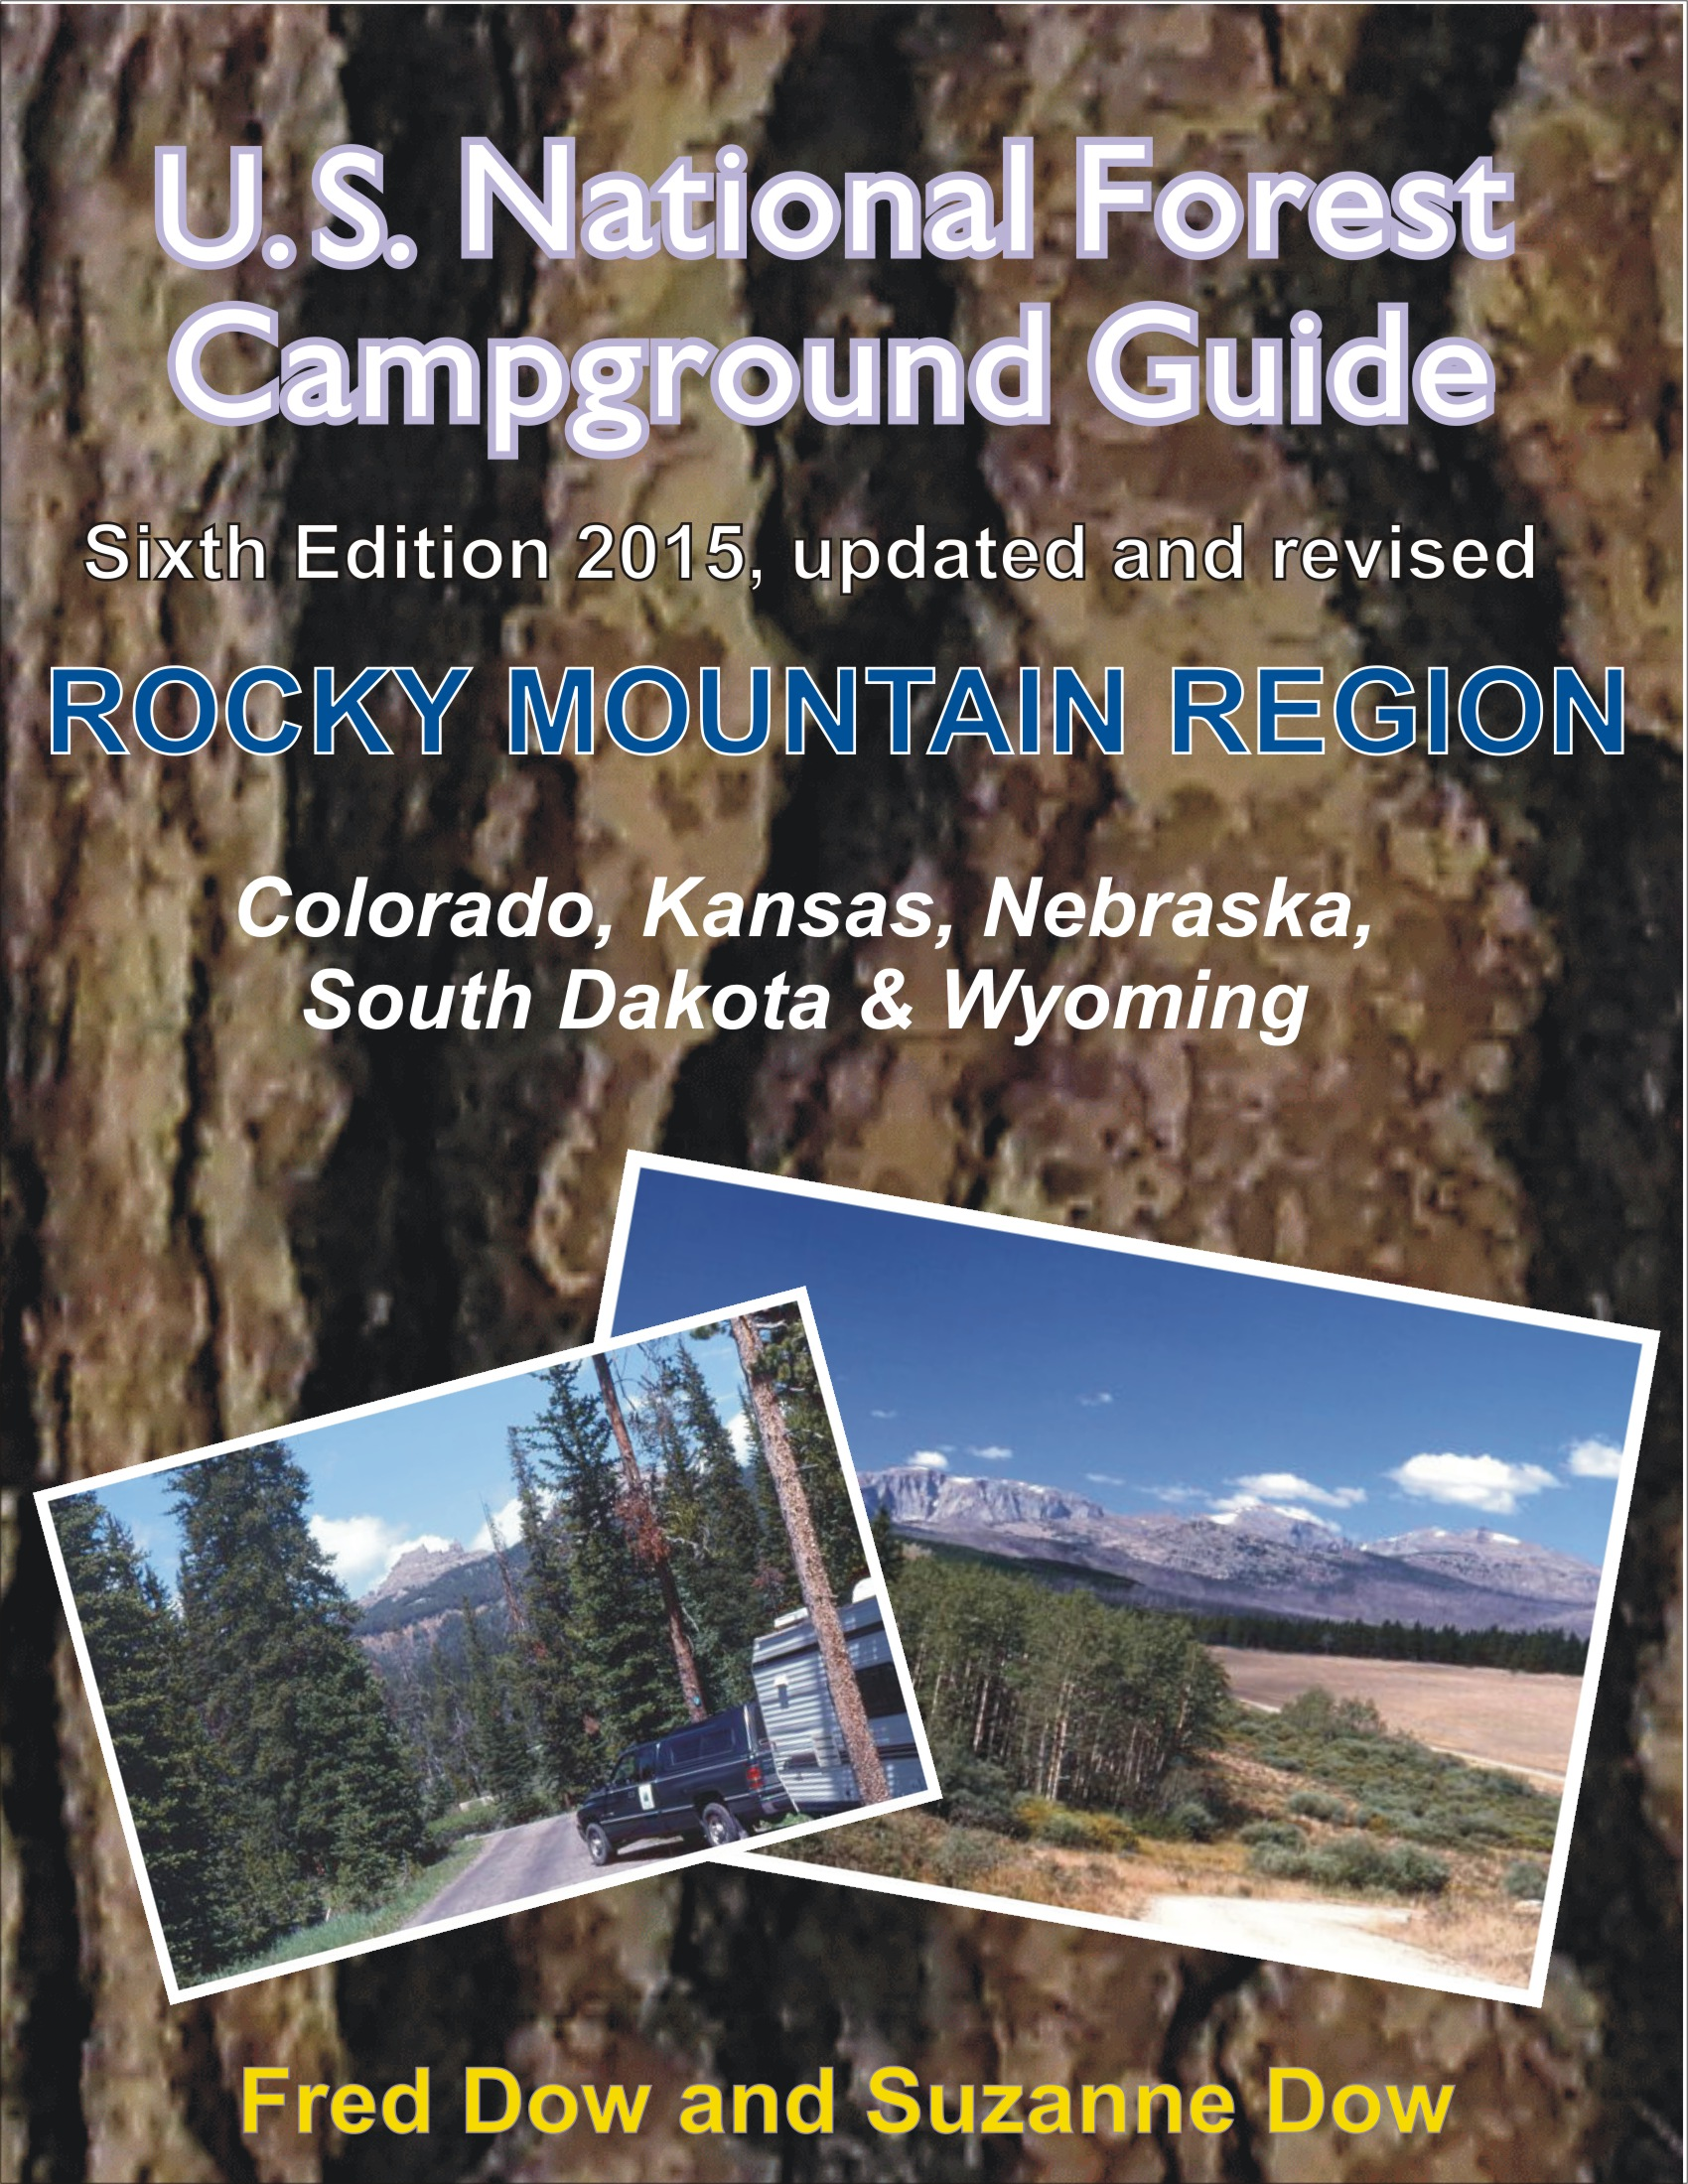 U.S. National Forest Campground Guide - Rocky Mountain Region